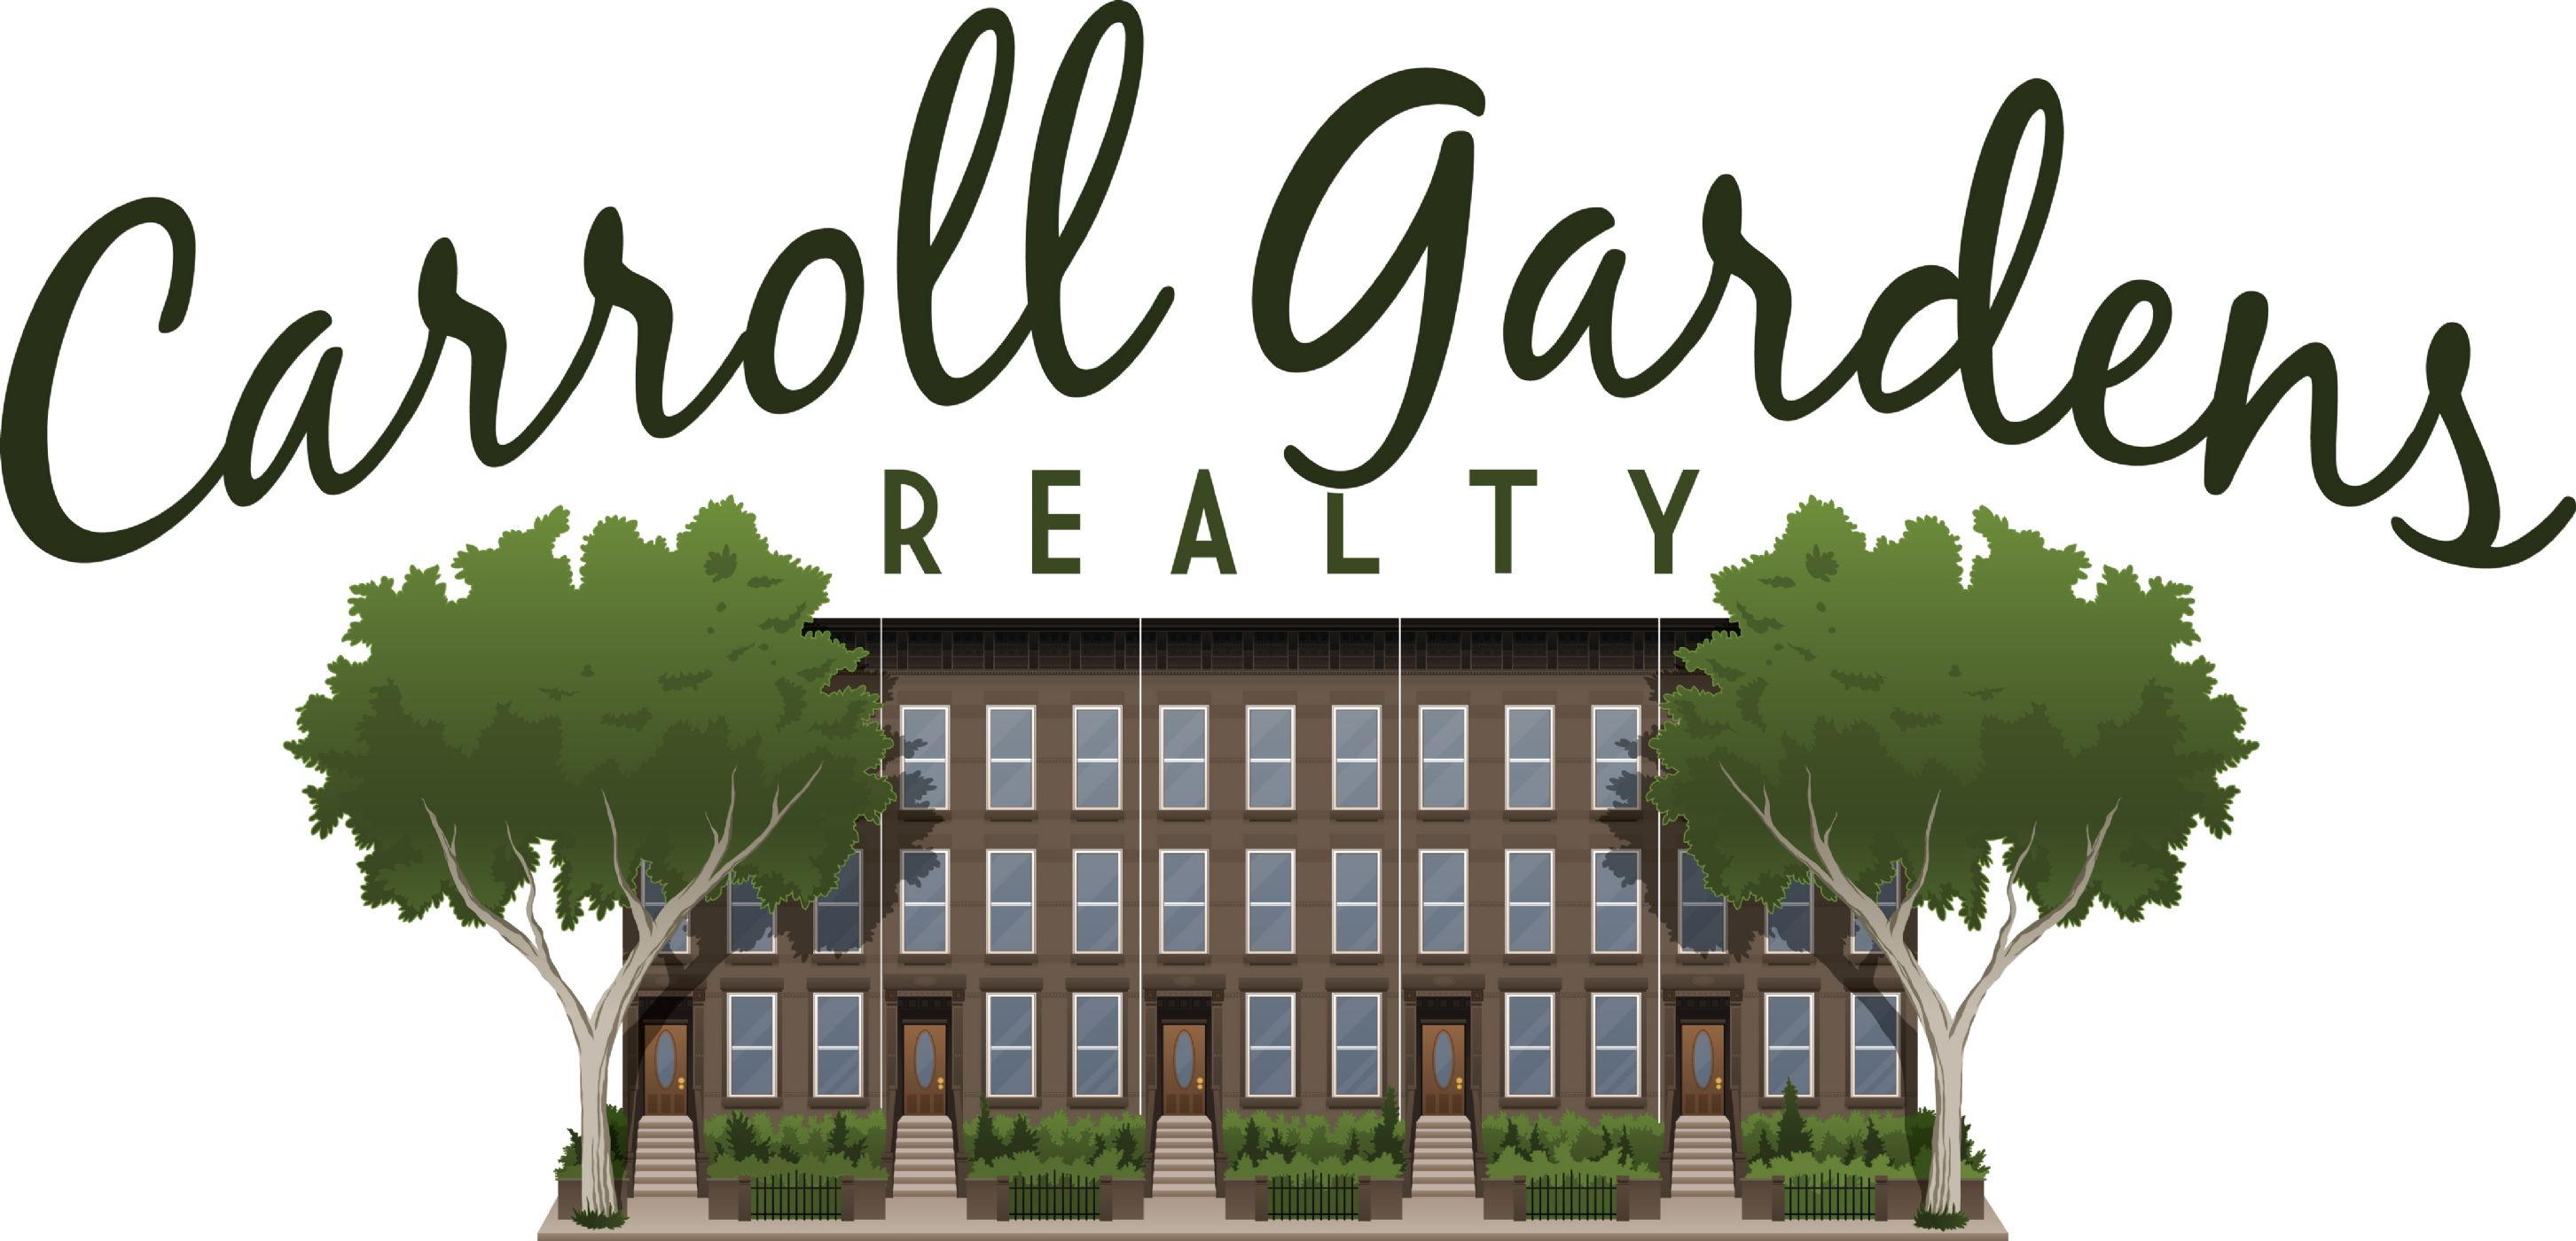 Carroll Gardens Realty